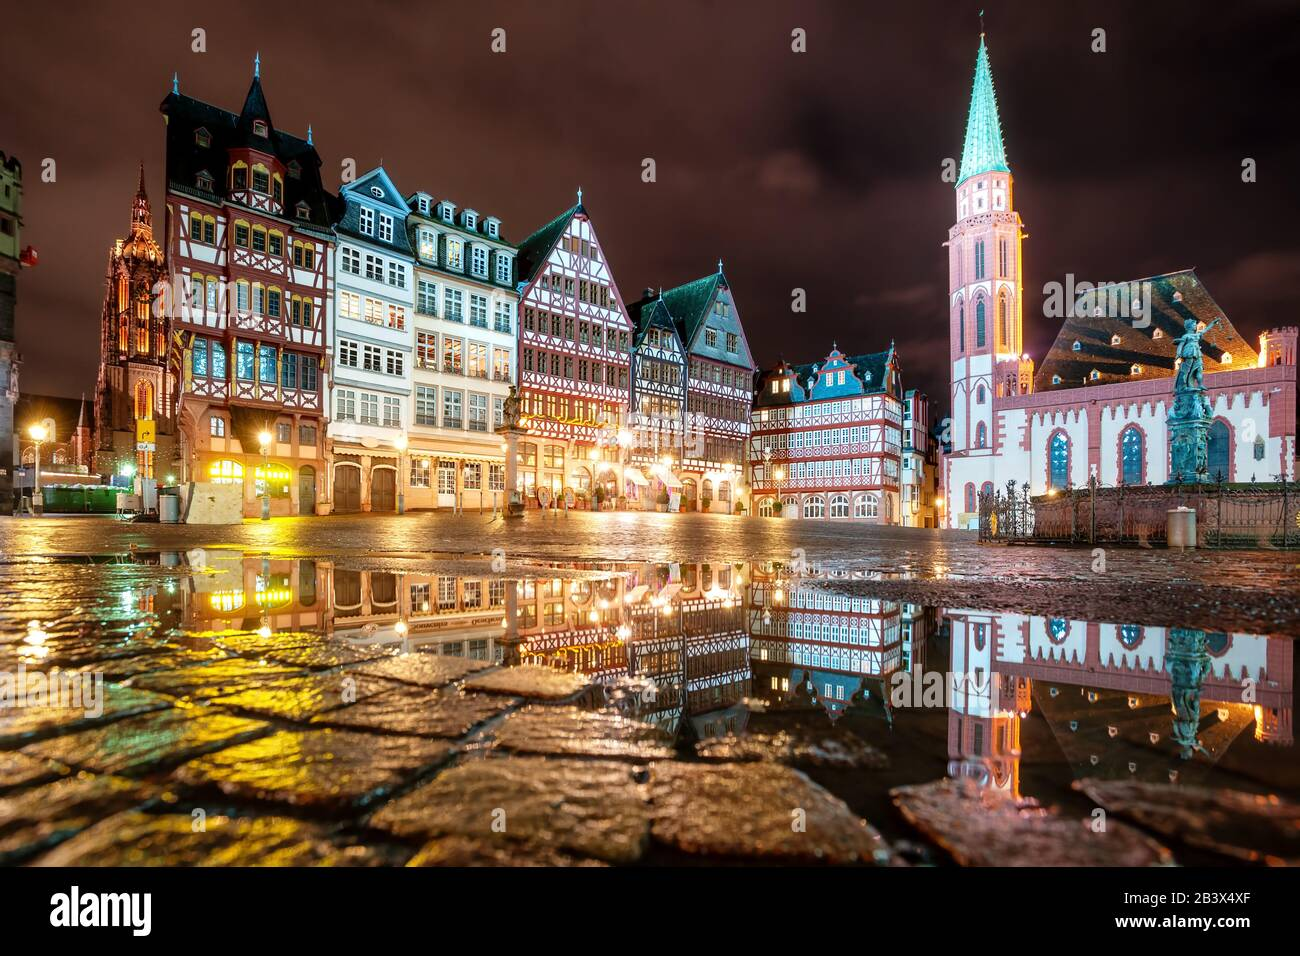 Roemerberg, the medieval Old town of Frankfurt on Main city, Germany, at night Stock Photo